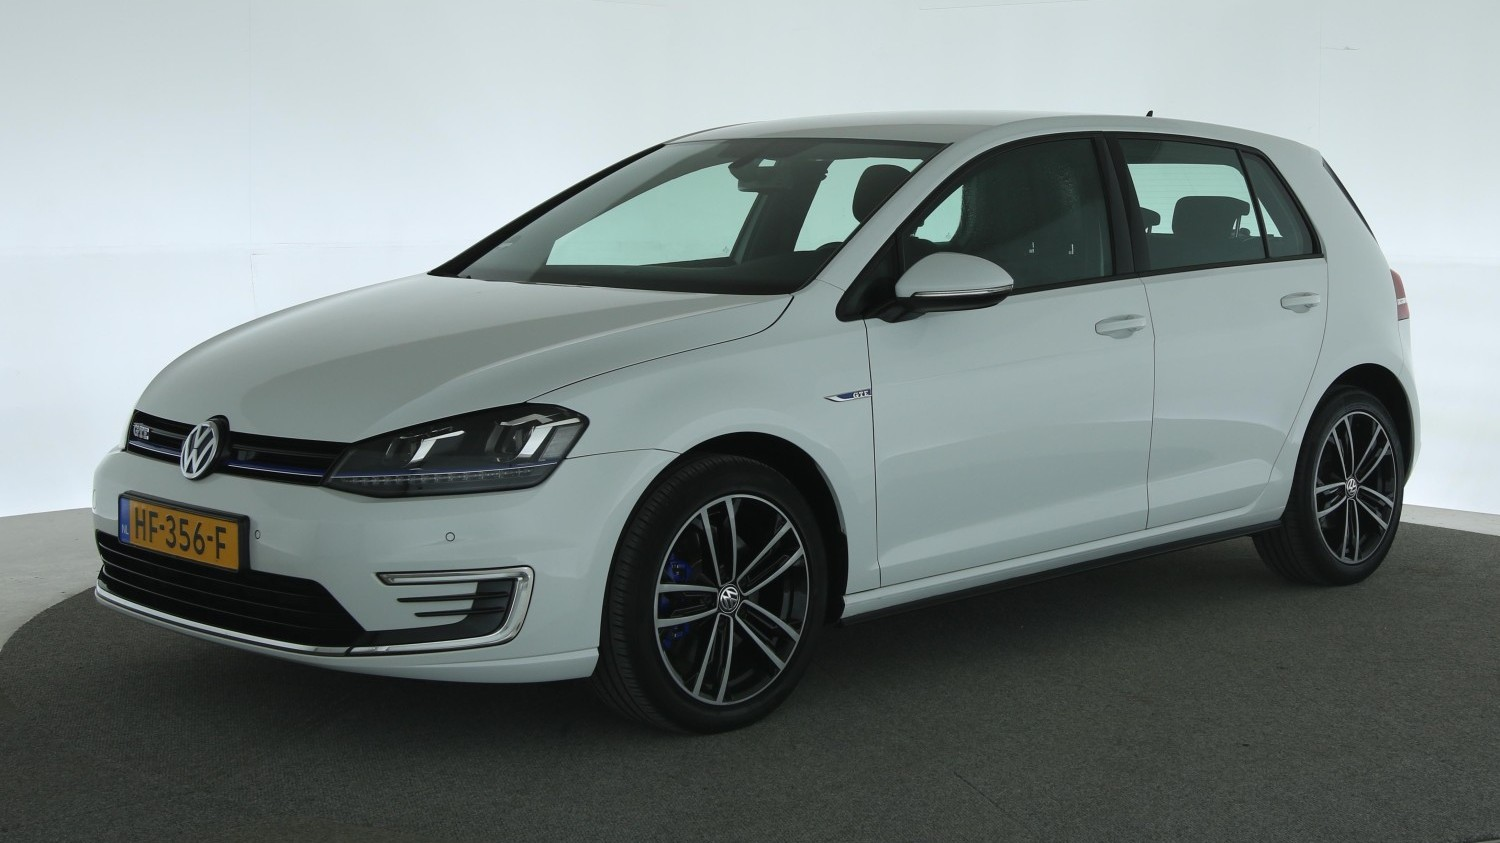 Volkswagen Golf Hatchback 2015 HF-356-F 1